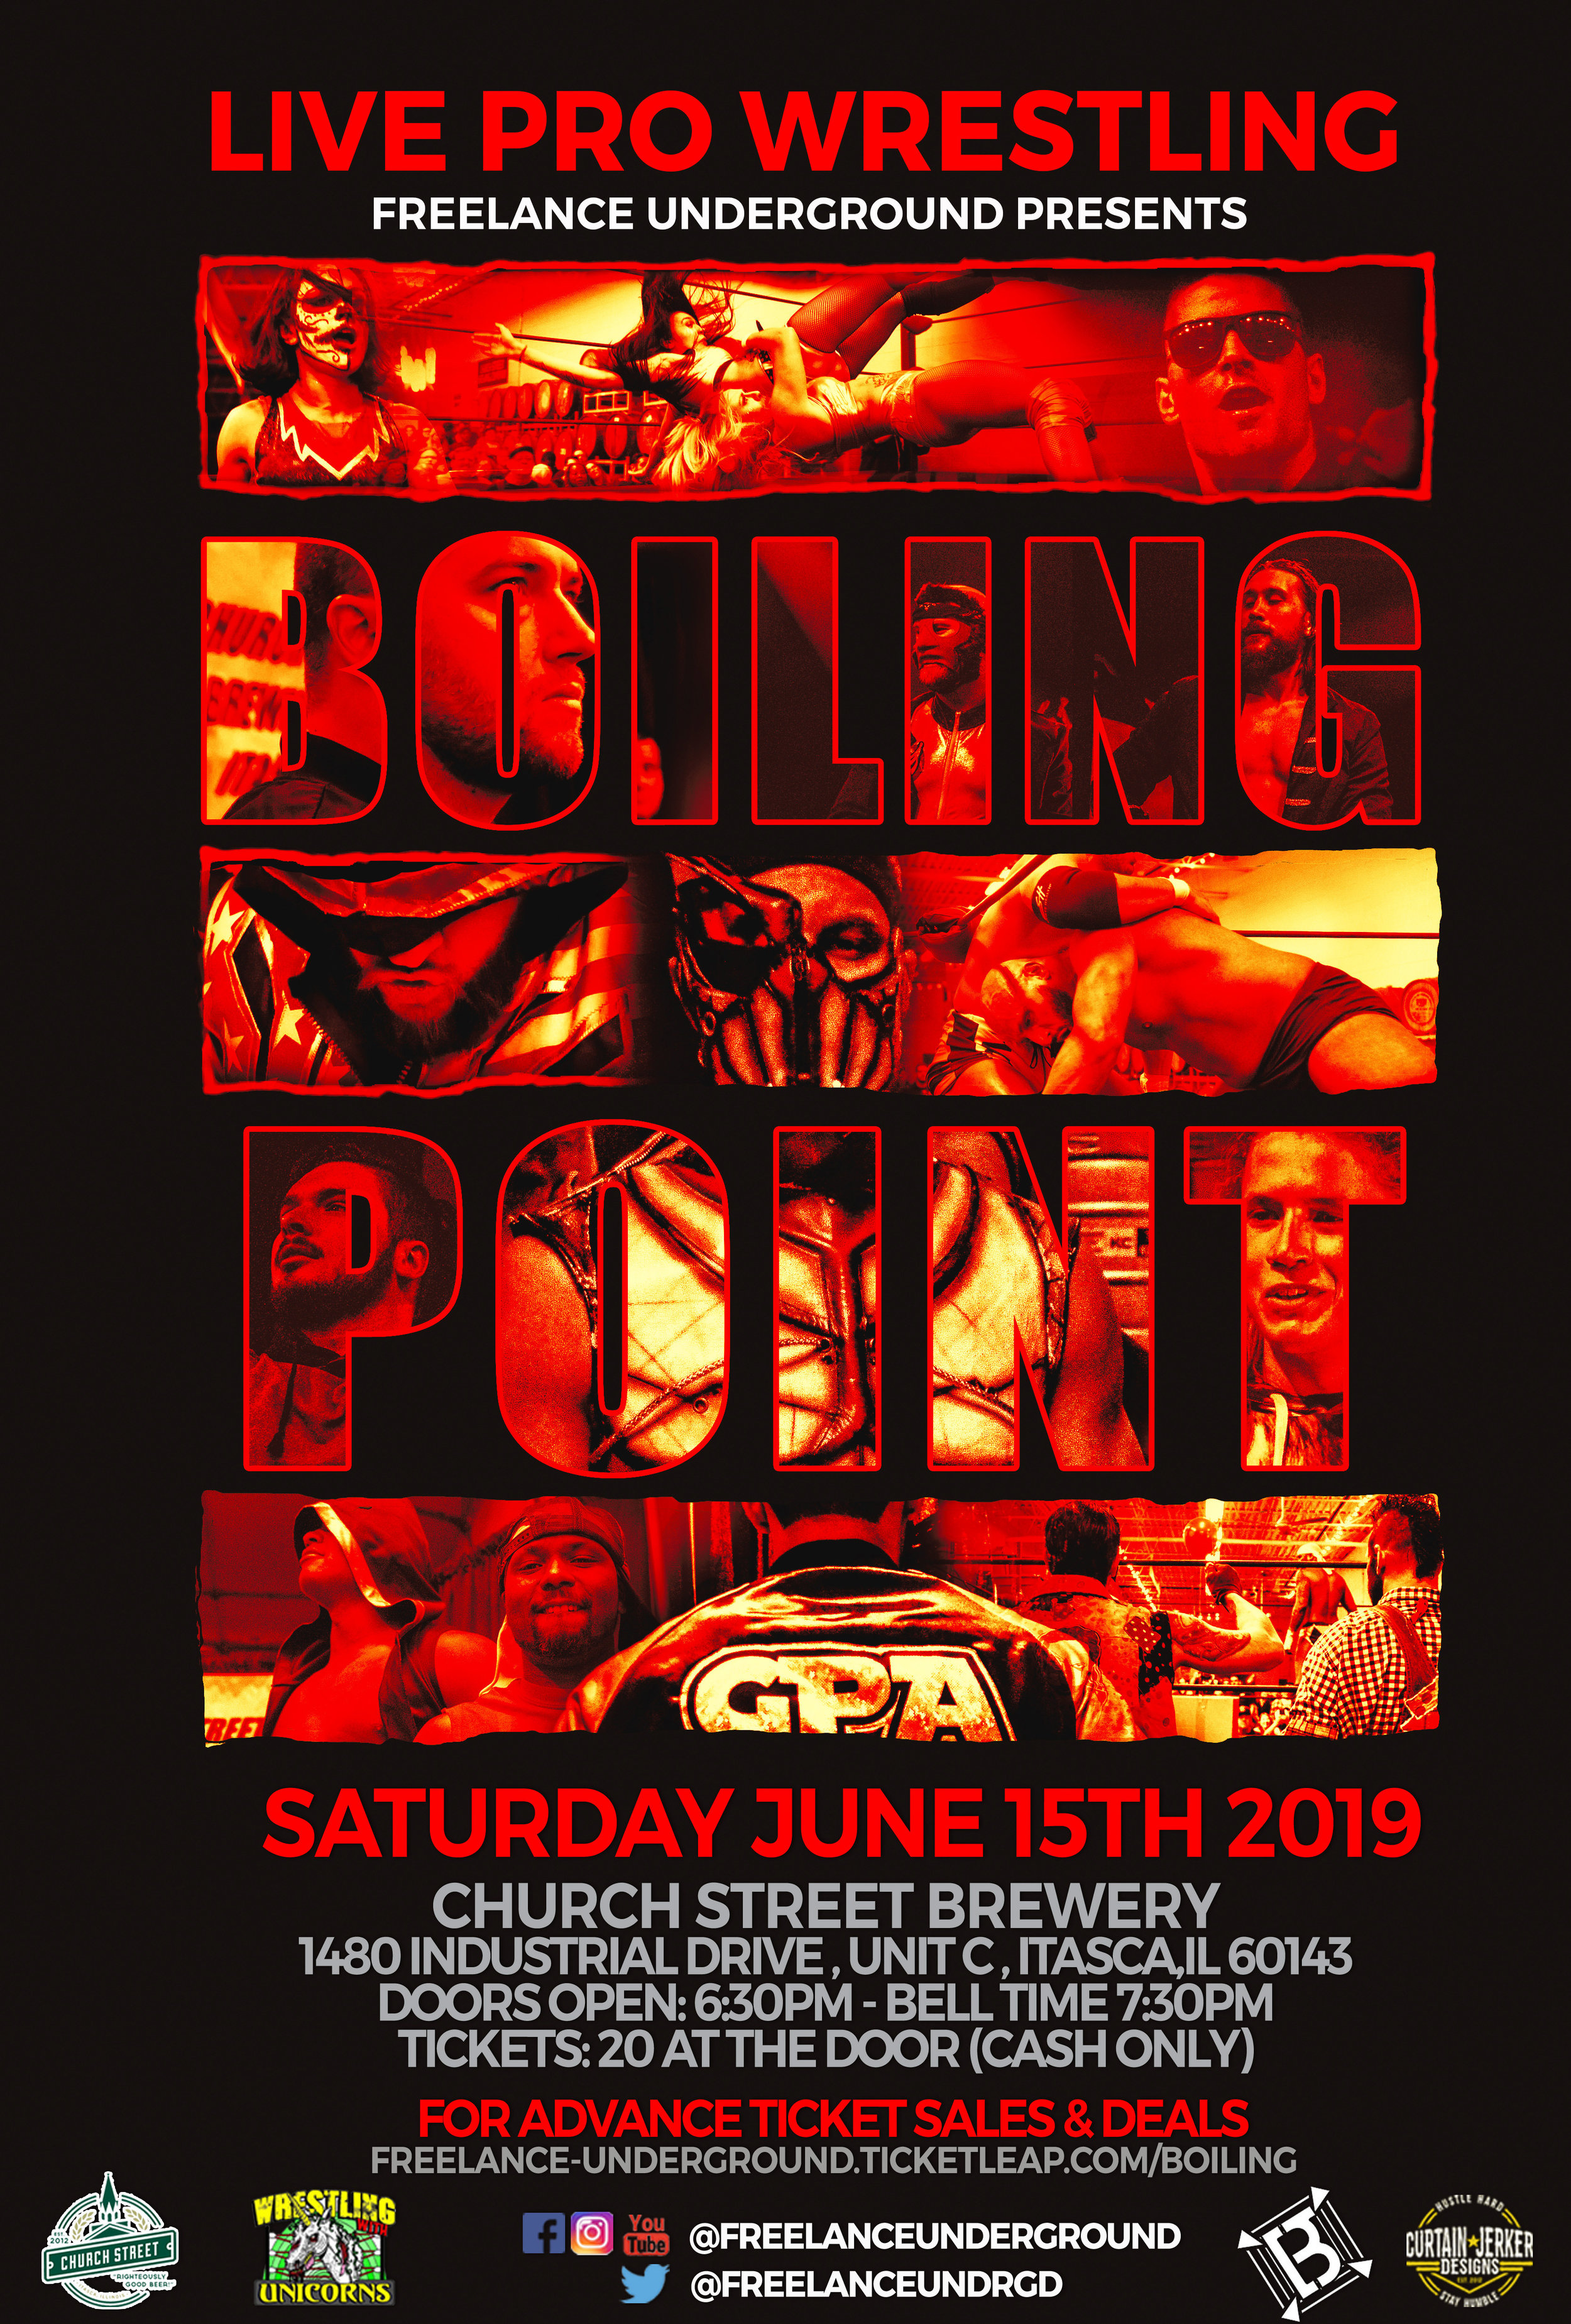 Official event poster for Freelance Underground Boiling Point